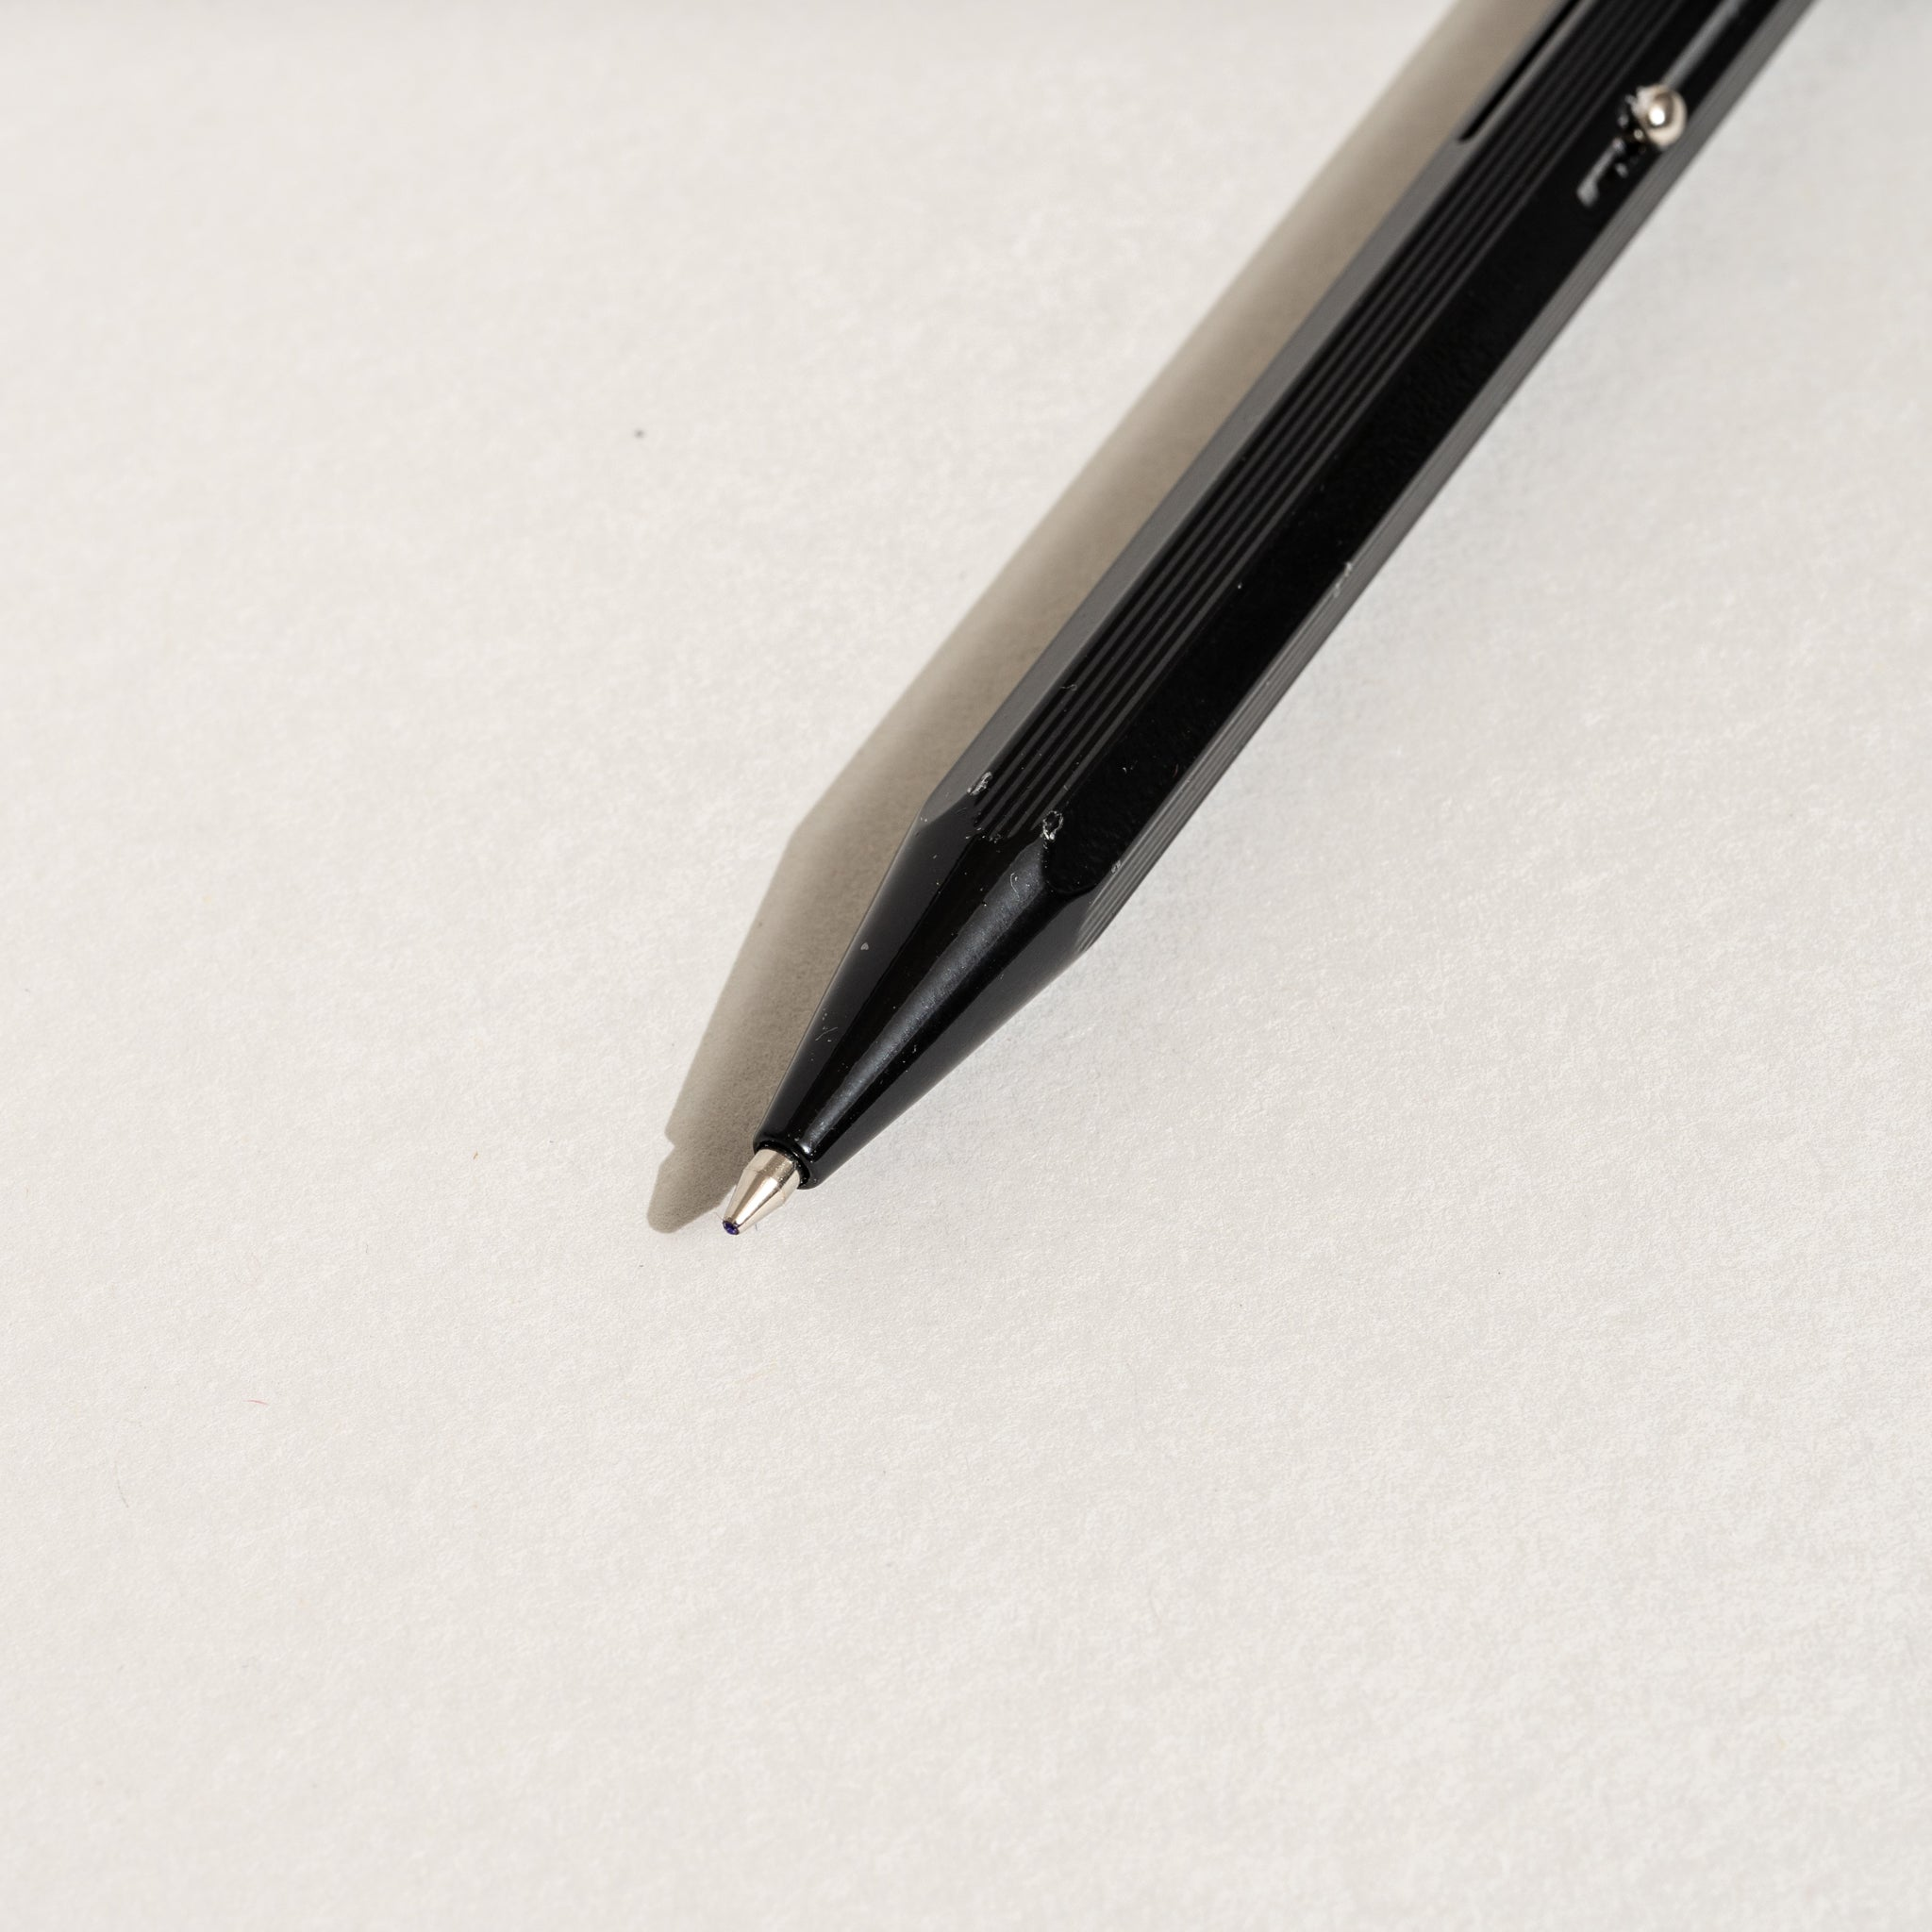 Hightide Stationery 4-Color Ballpoint Pen (Black)